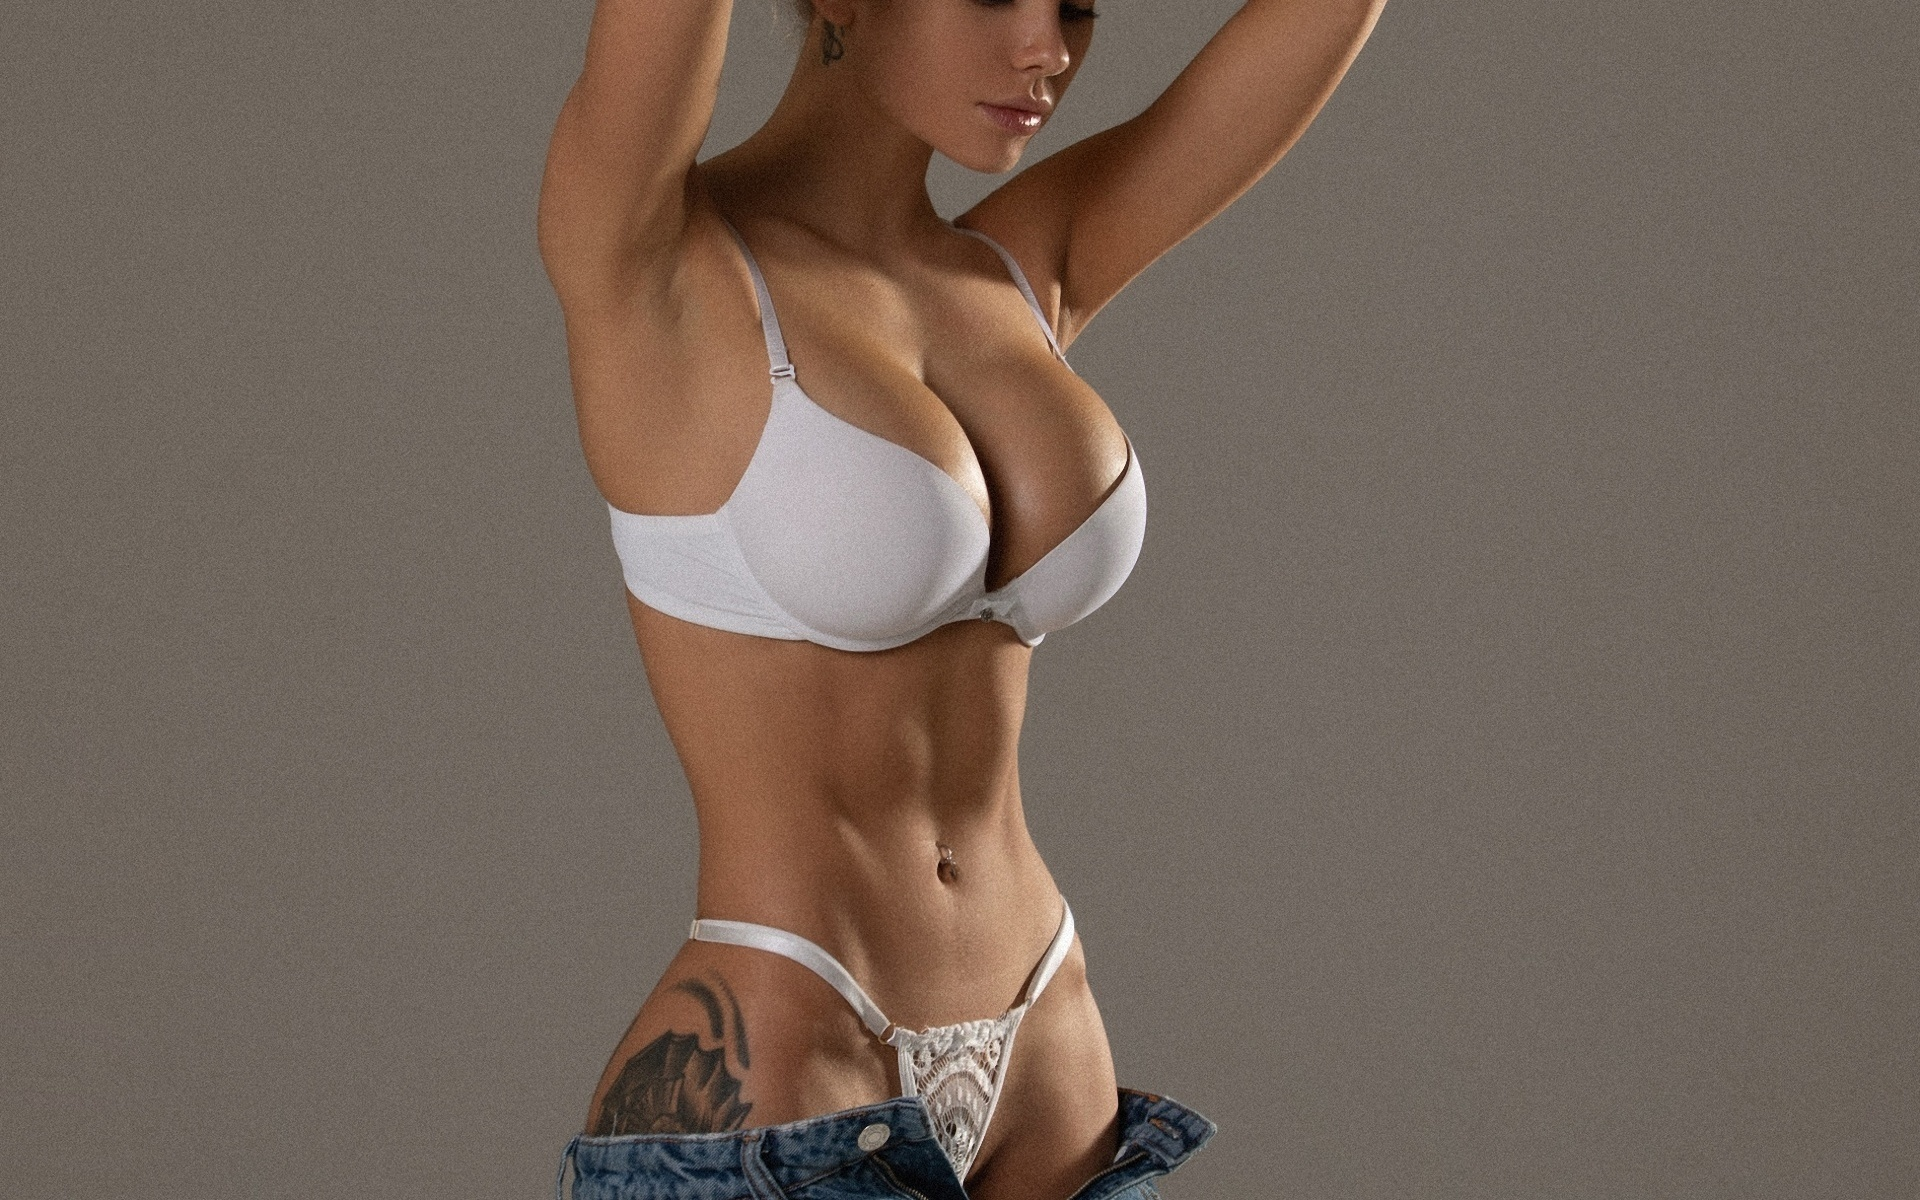 Nude Babes Exposed Boobs